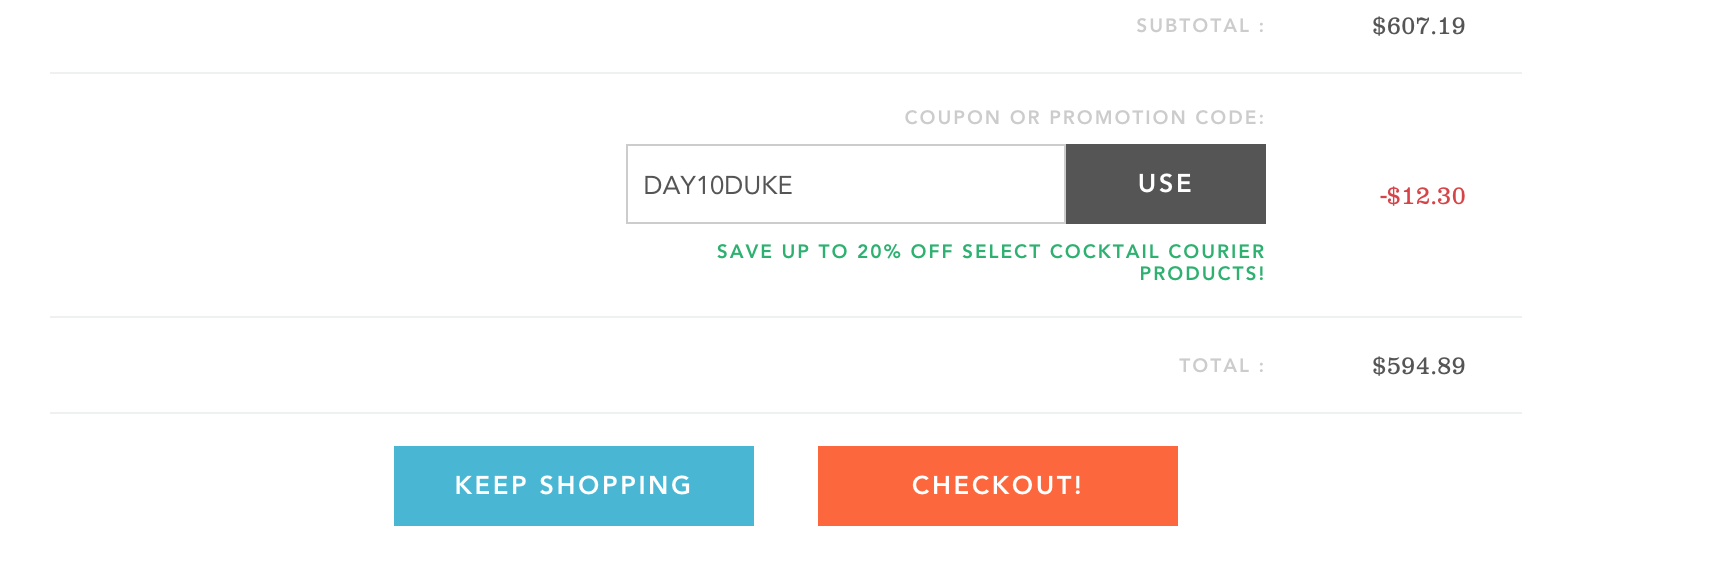 How Do I Apply My Discount Code?